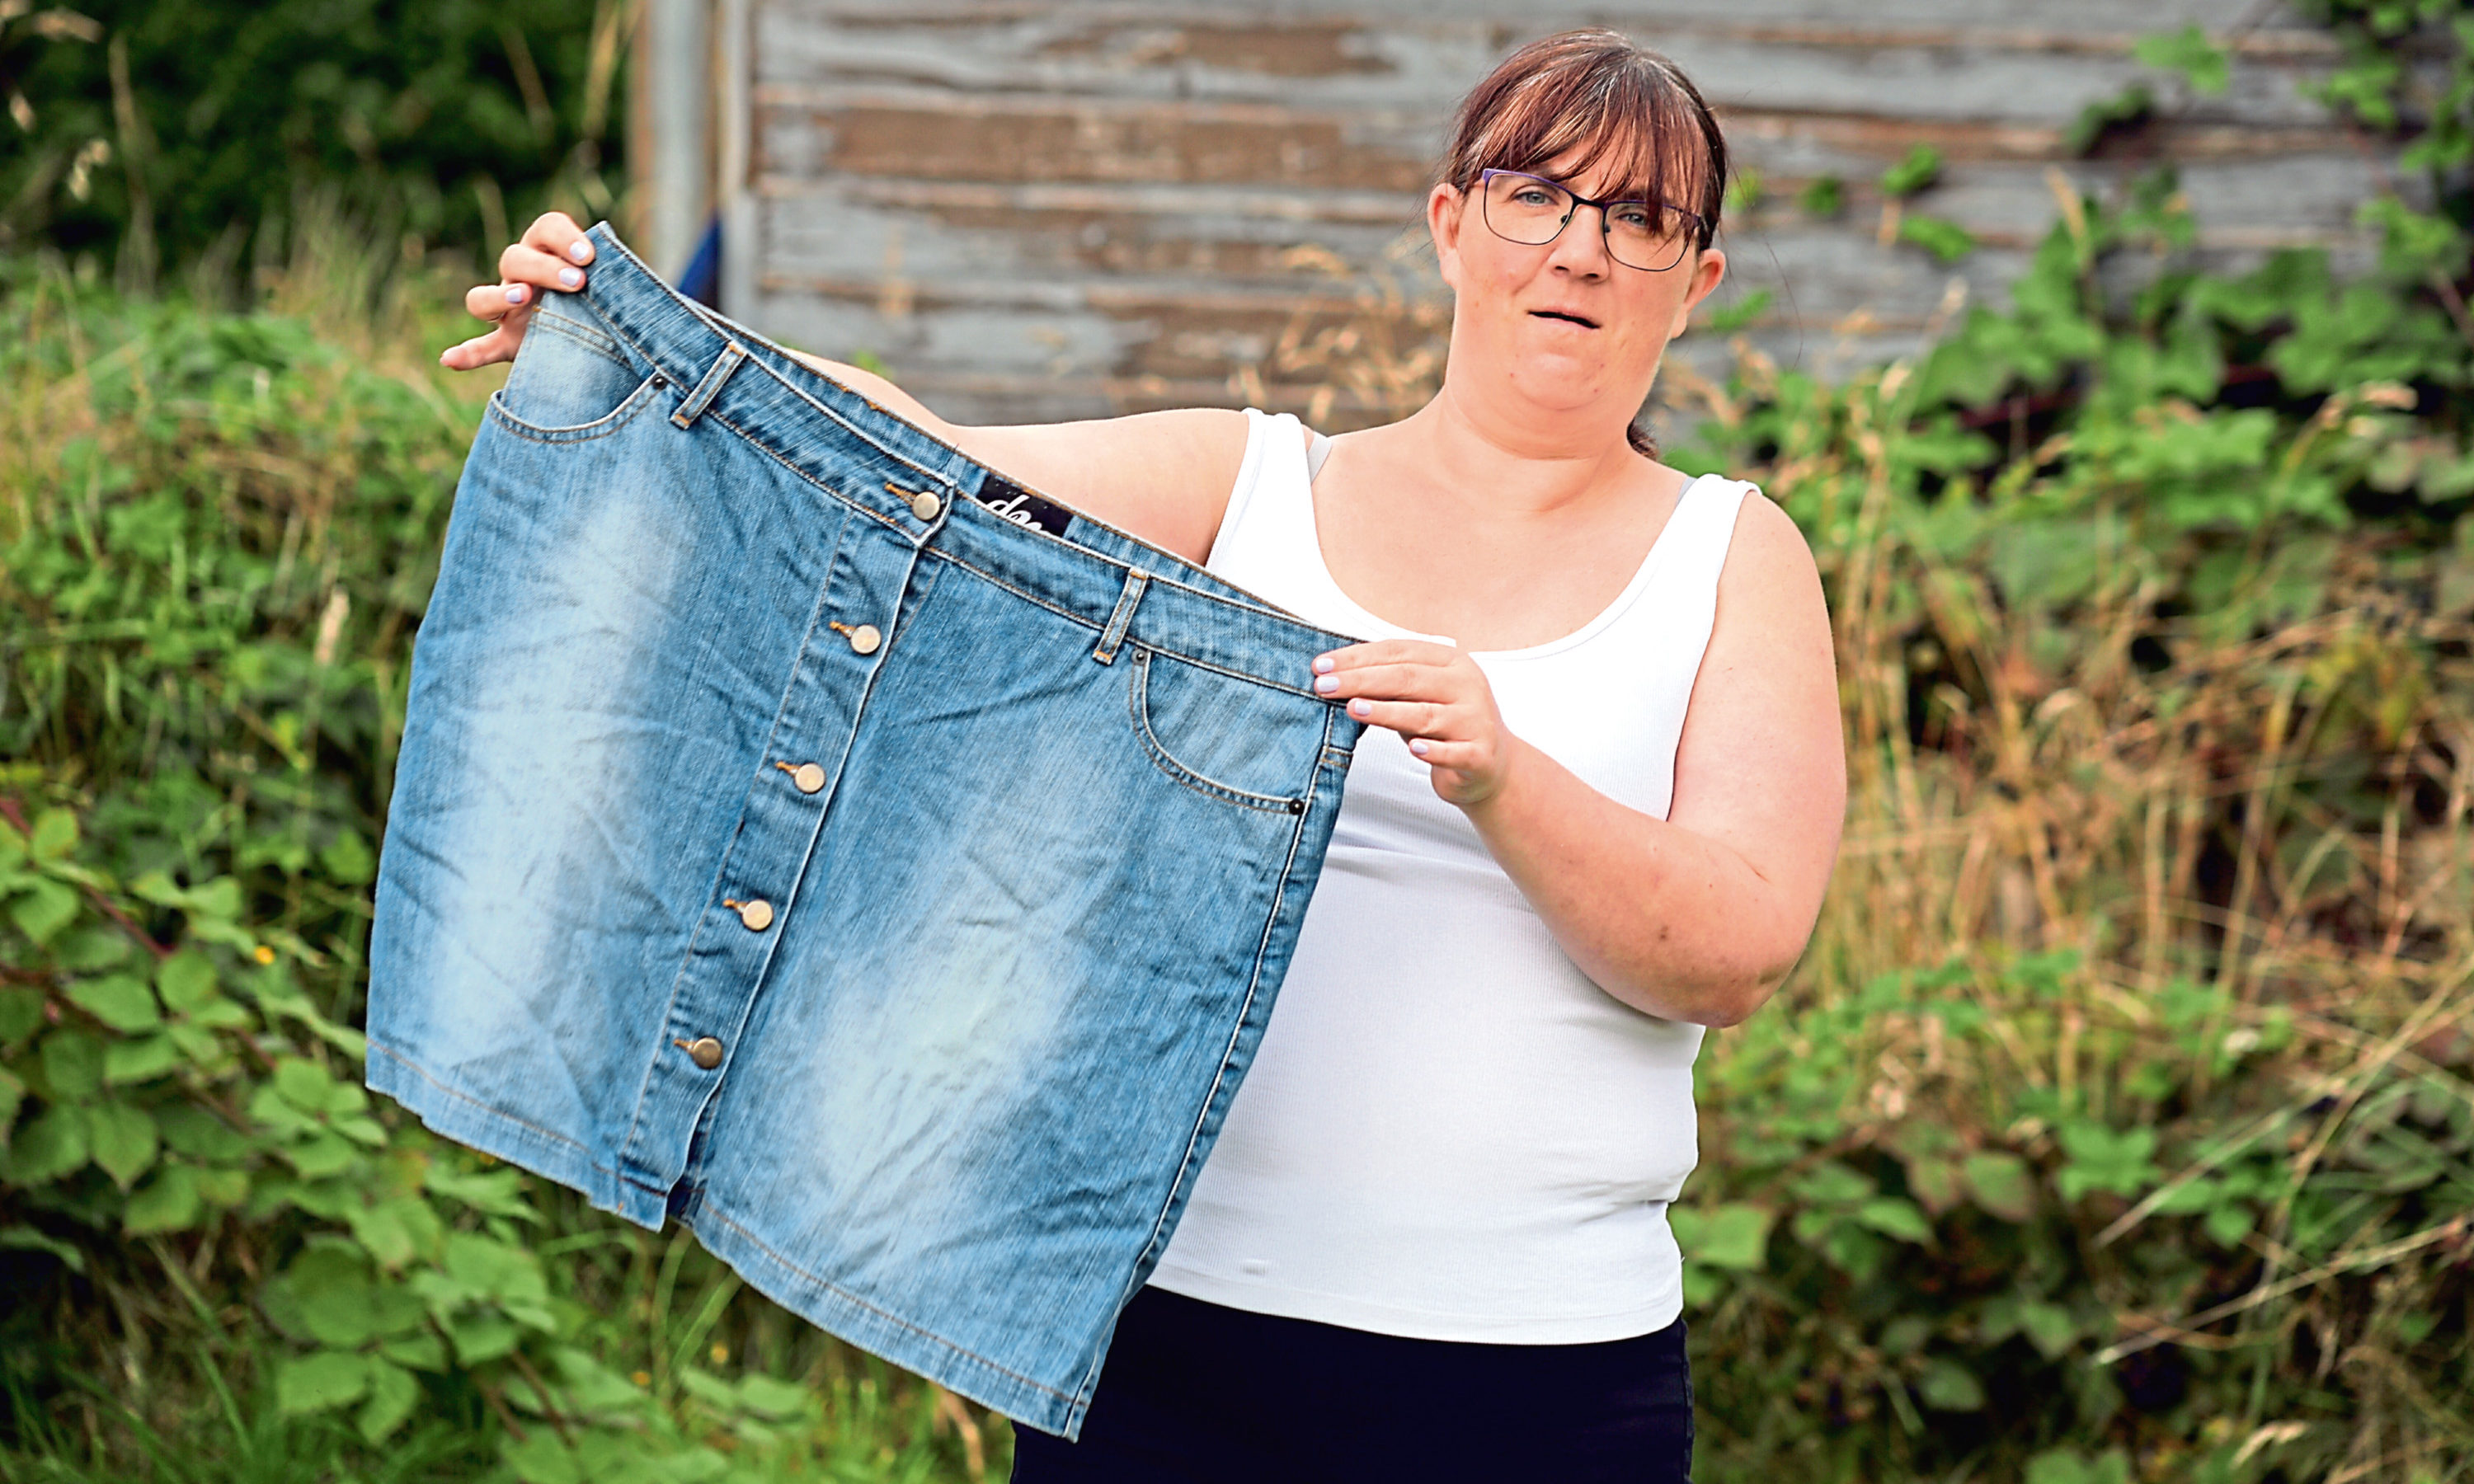 Ruby Hercus with an old pair of shorts - a reminder of how much weight shes lost.